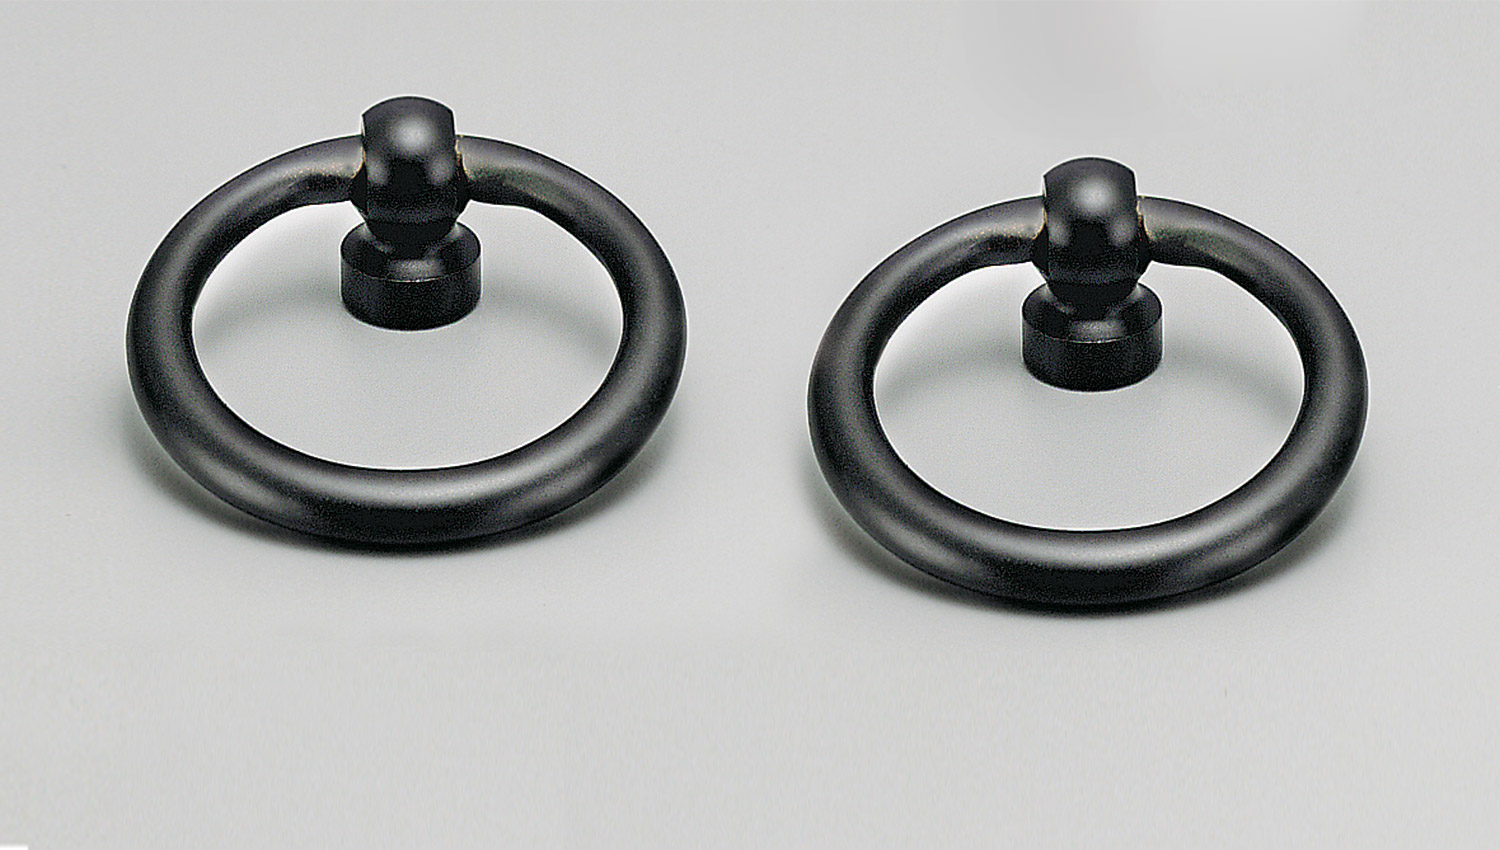 L9240 ring knob black for Kitchen knobs and handles, kitchen cabinet knobs and handles, vanity knobs and handles, bathroom knobs and handles, kitchen cupboard knobs and handles, kitchen hardware, matt black knobs and handles, cabinet hardware